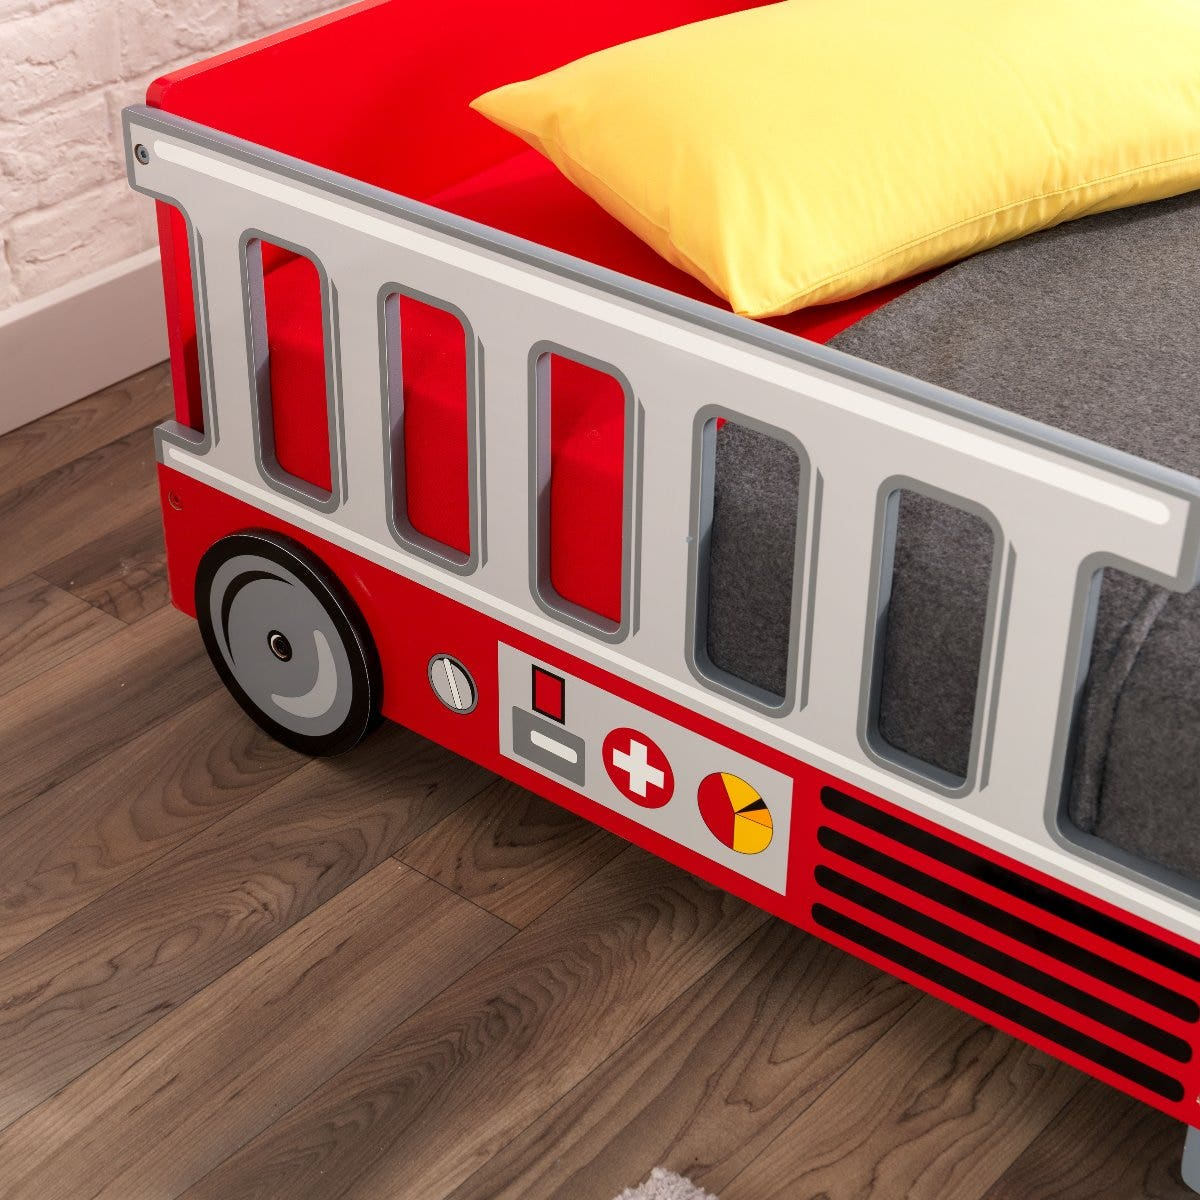 Makes the transition from a cot to a regular bed as easy as possible